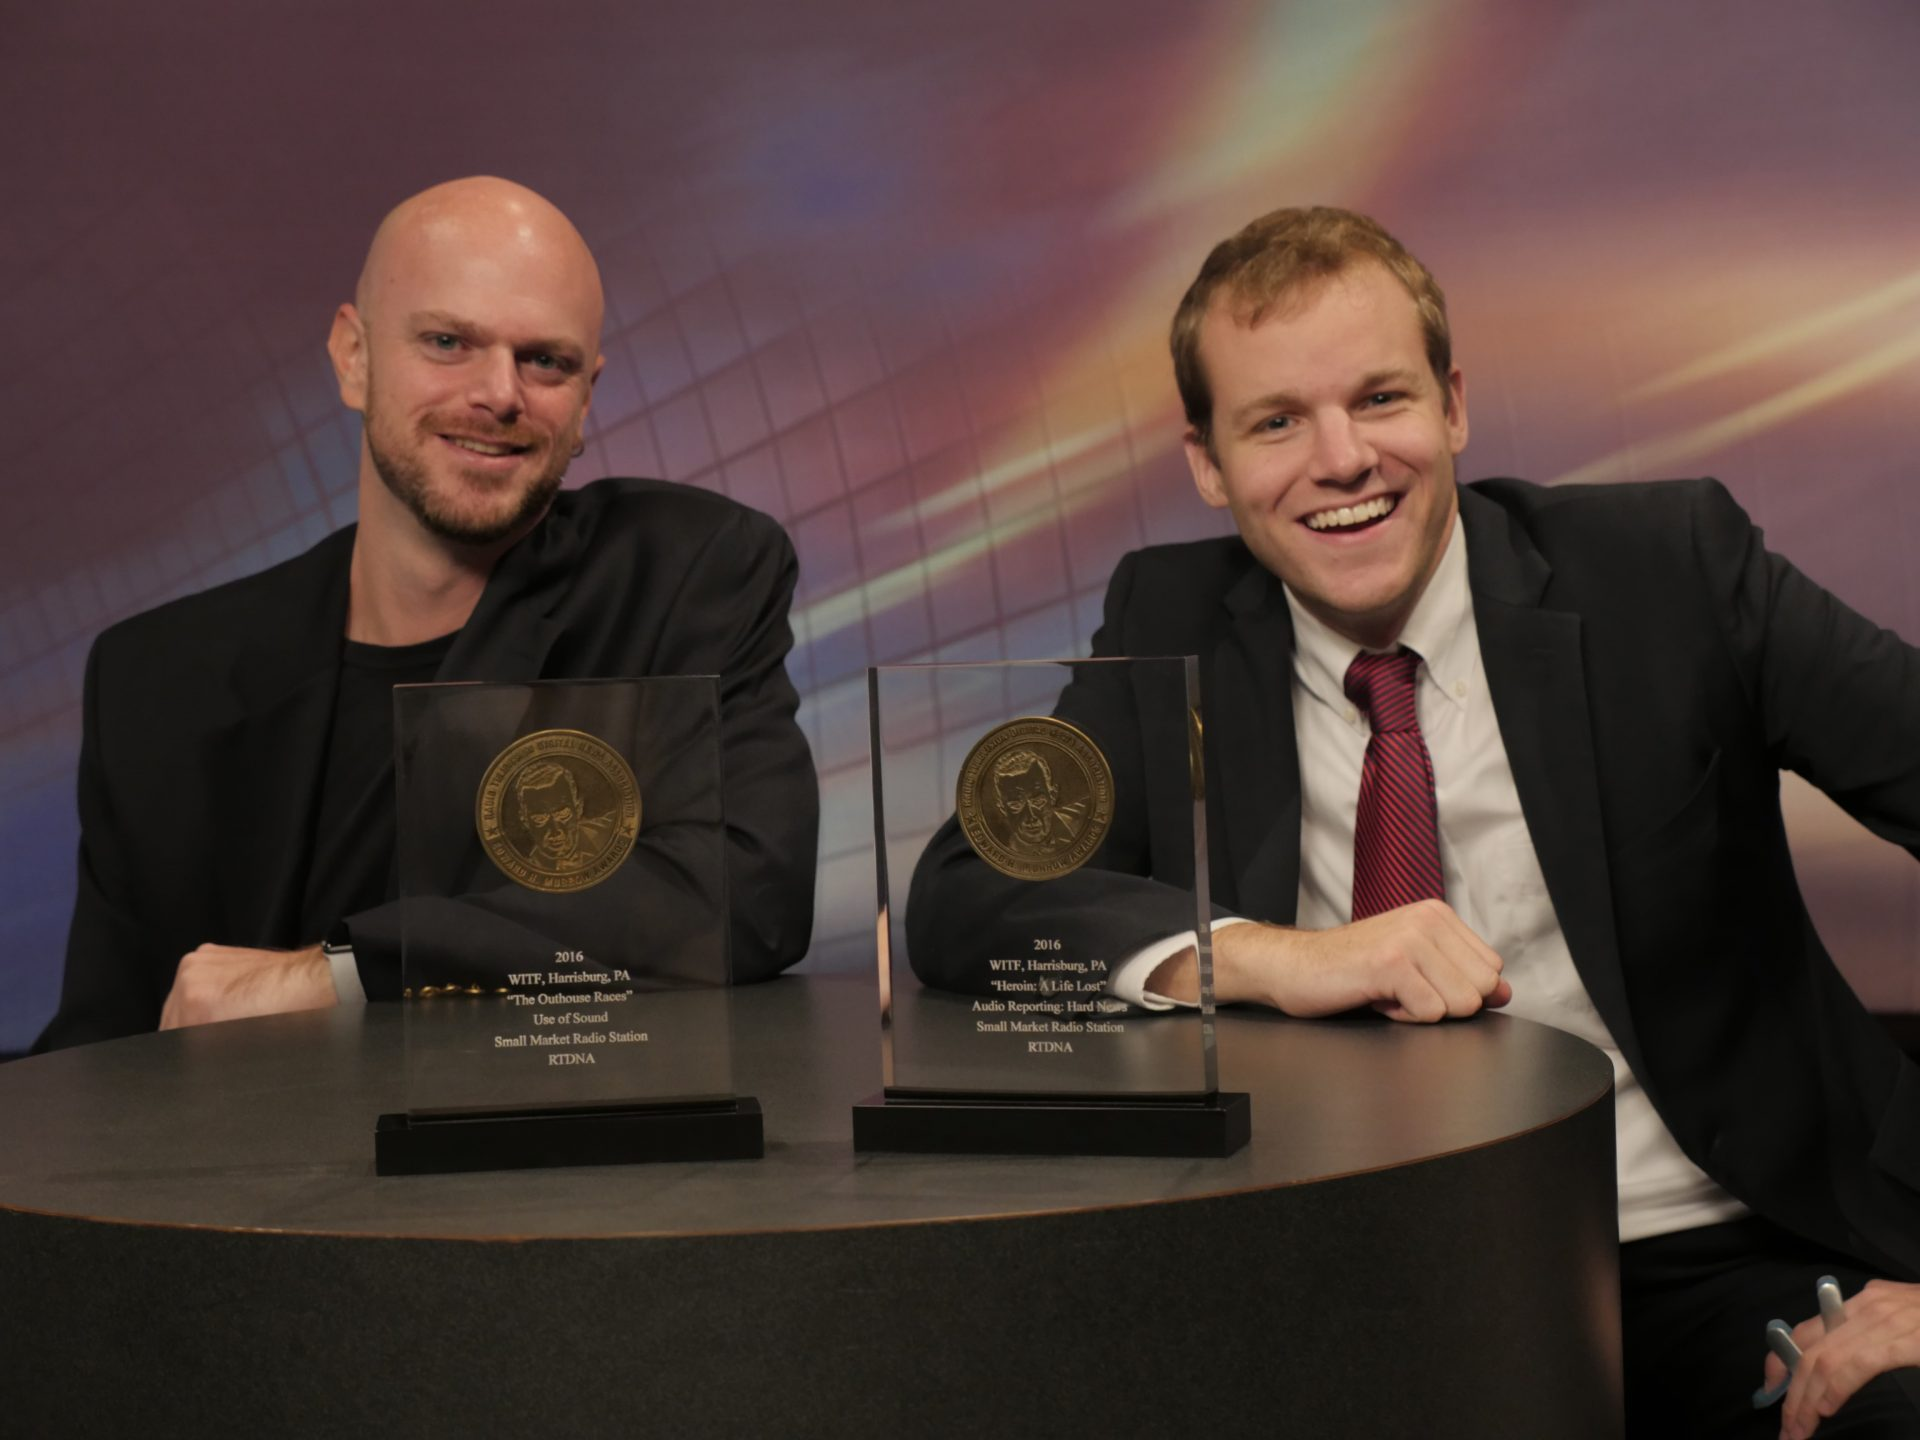 Joe Ulrich and Ben Allen pose with National Edward R. Murrow Award plaques recognizing their work in October 2016.